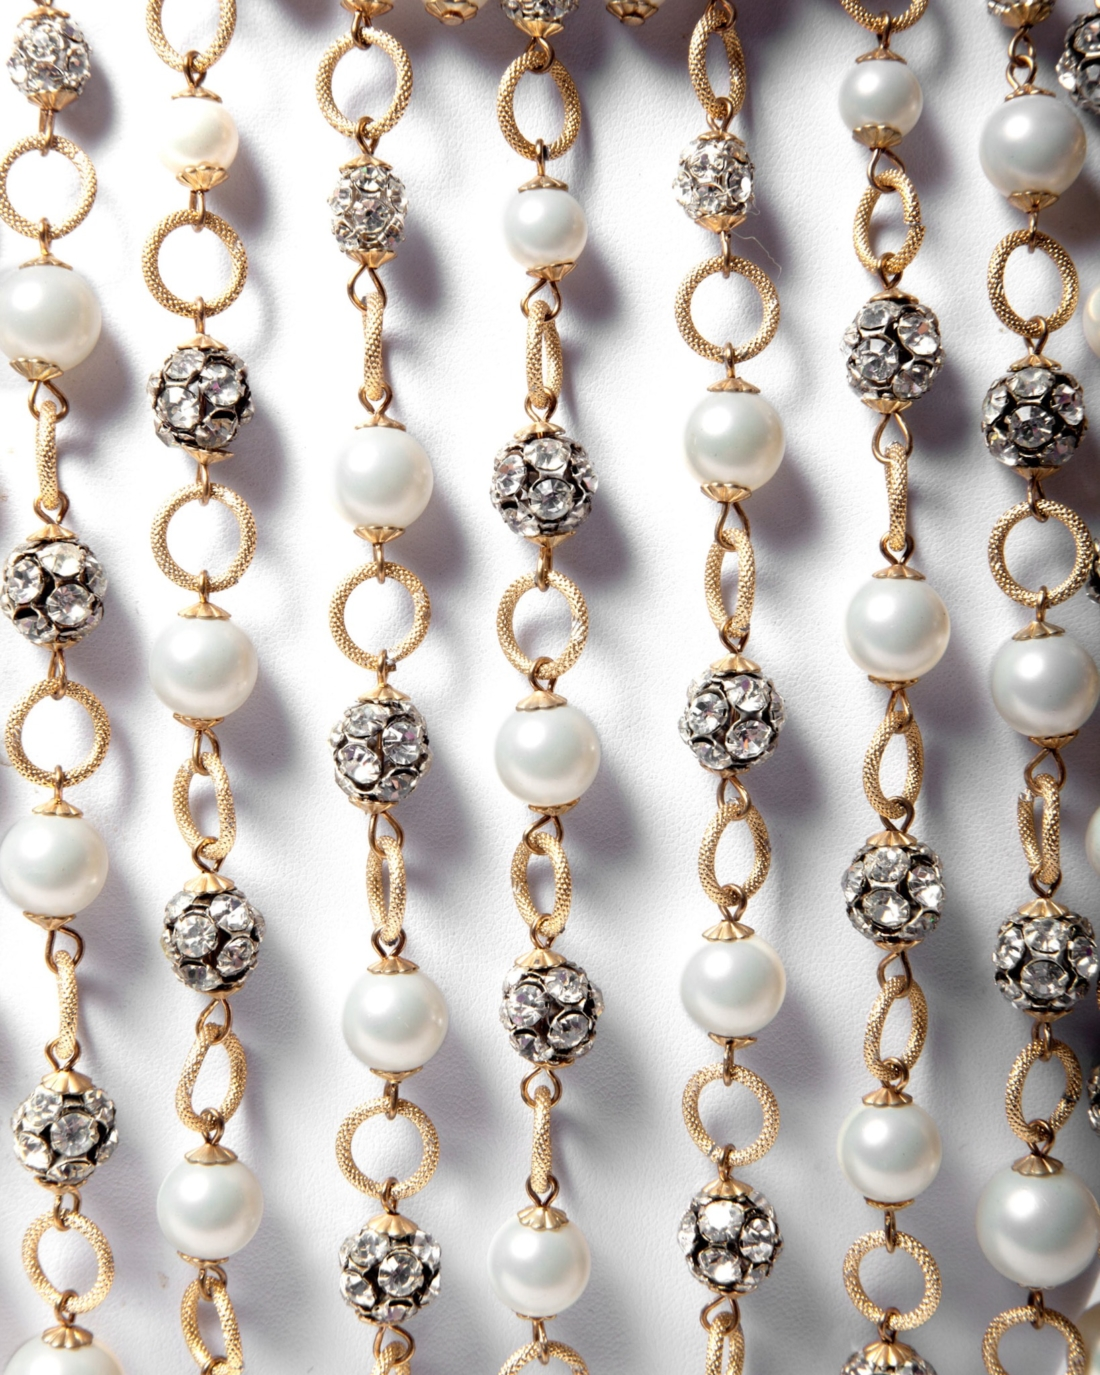 Pearl and Sparkling Crystal Ball Plunging Fringe Waterfall Necklace, circa 1950's